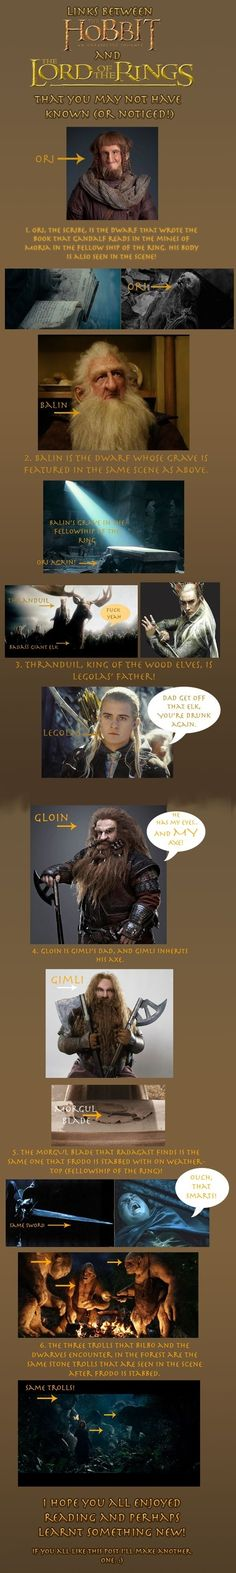 For The Hobbit LOTR Fans // funny pictures - funny photos - funny images - funny pics - funny quotes - #lol #humor #funnypictures